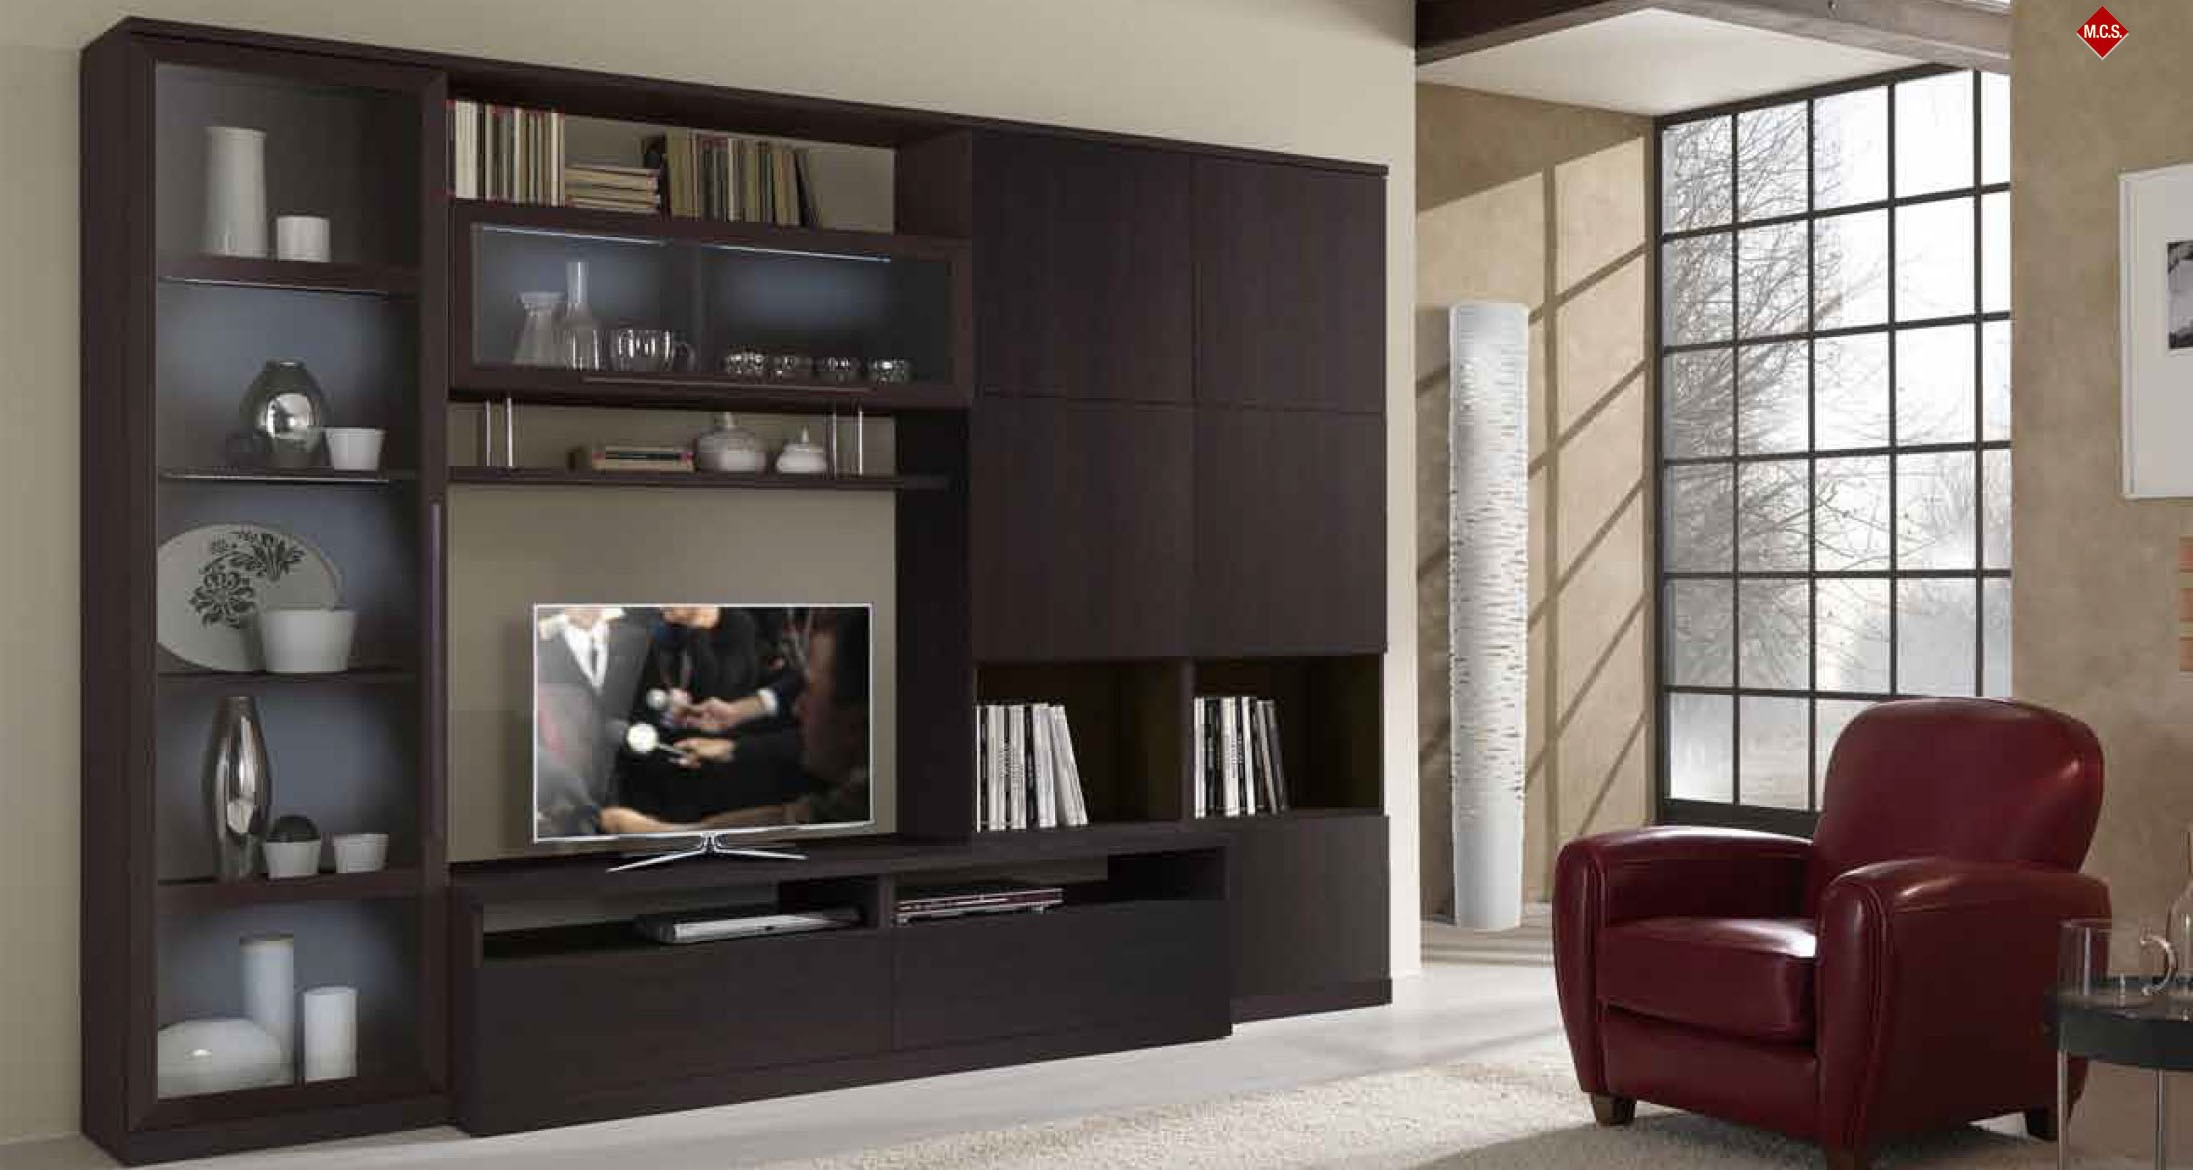 Tv Unit Ideas Wall Mounted Tv Unit Designs Tv Unit Design For Living Room  Tv Cabinet20 Modern TV Unit Design Ideas For Bedroom Living Room With  Pictures